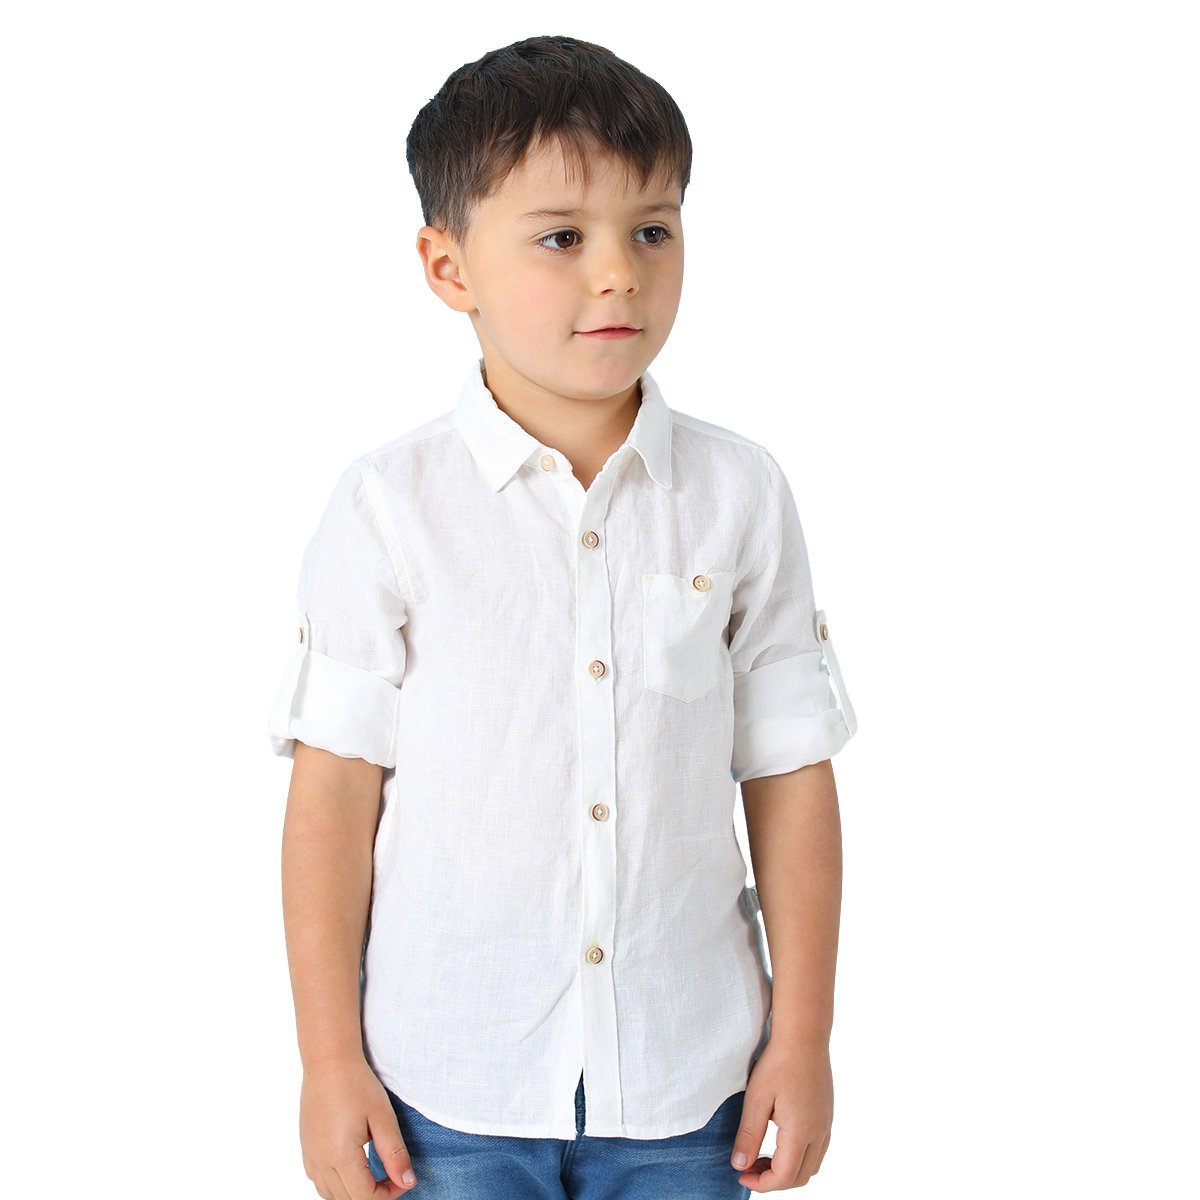 marc janie Spring Baby Boys Kids' Linen Shirt Solid Long Sleeve Button-Down Shirt 5T White 18953